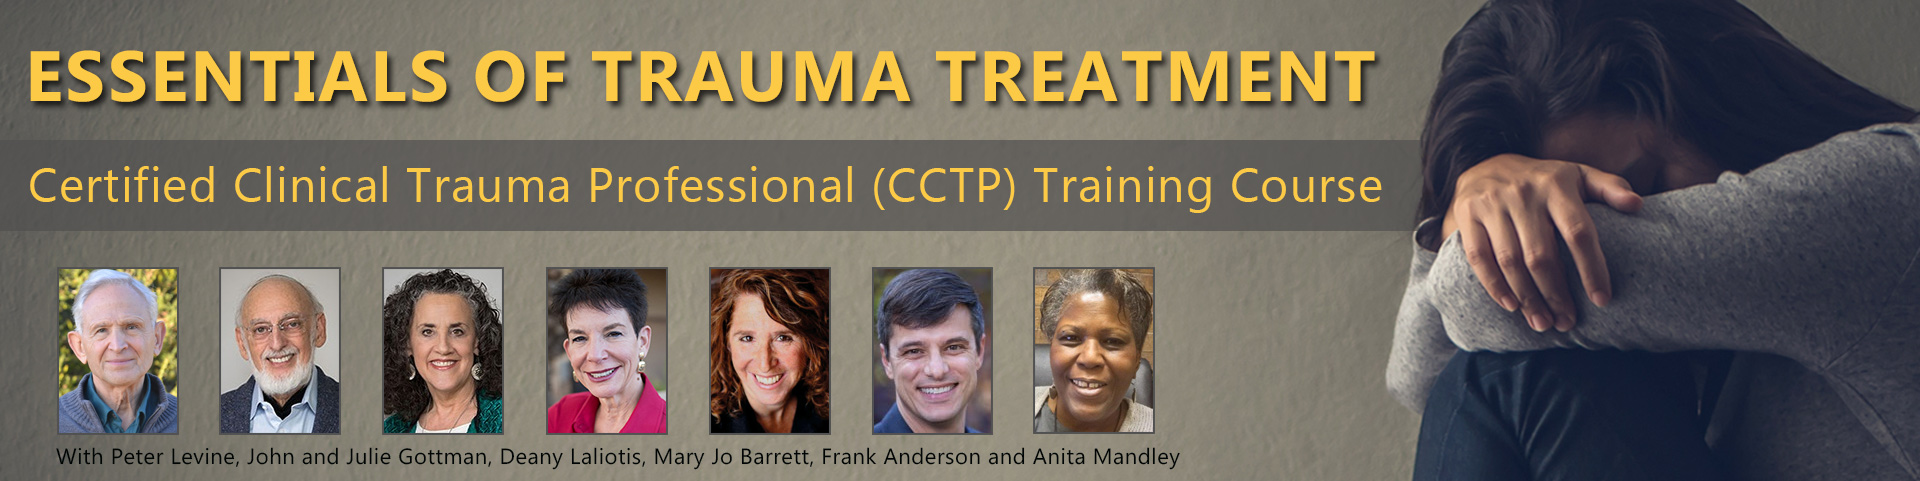 Essentials of Trauma Treatment: Trauma Certification (CCTP) Course